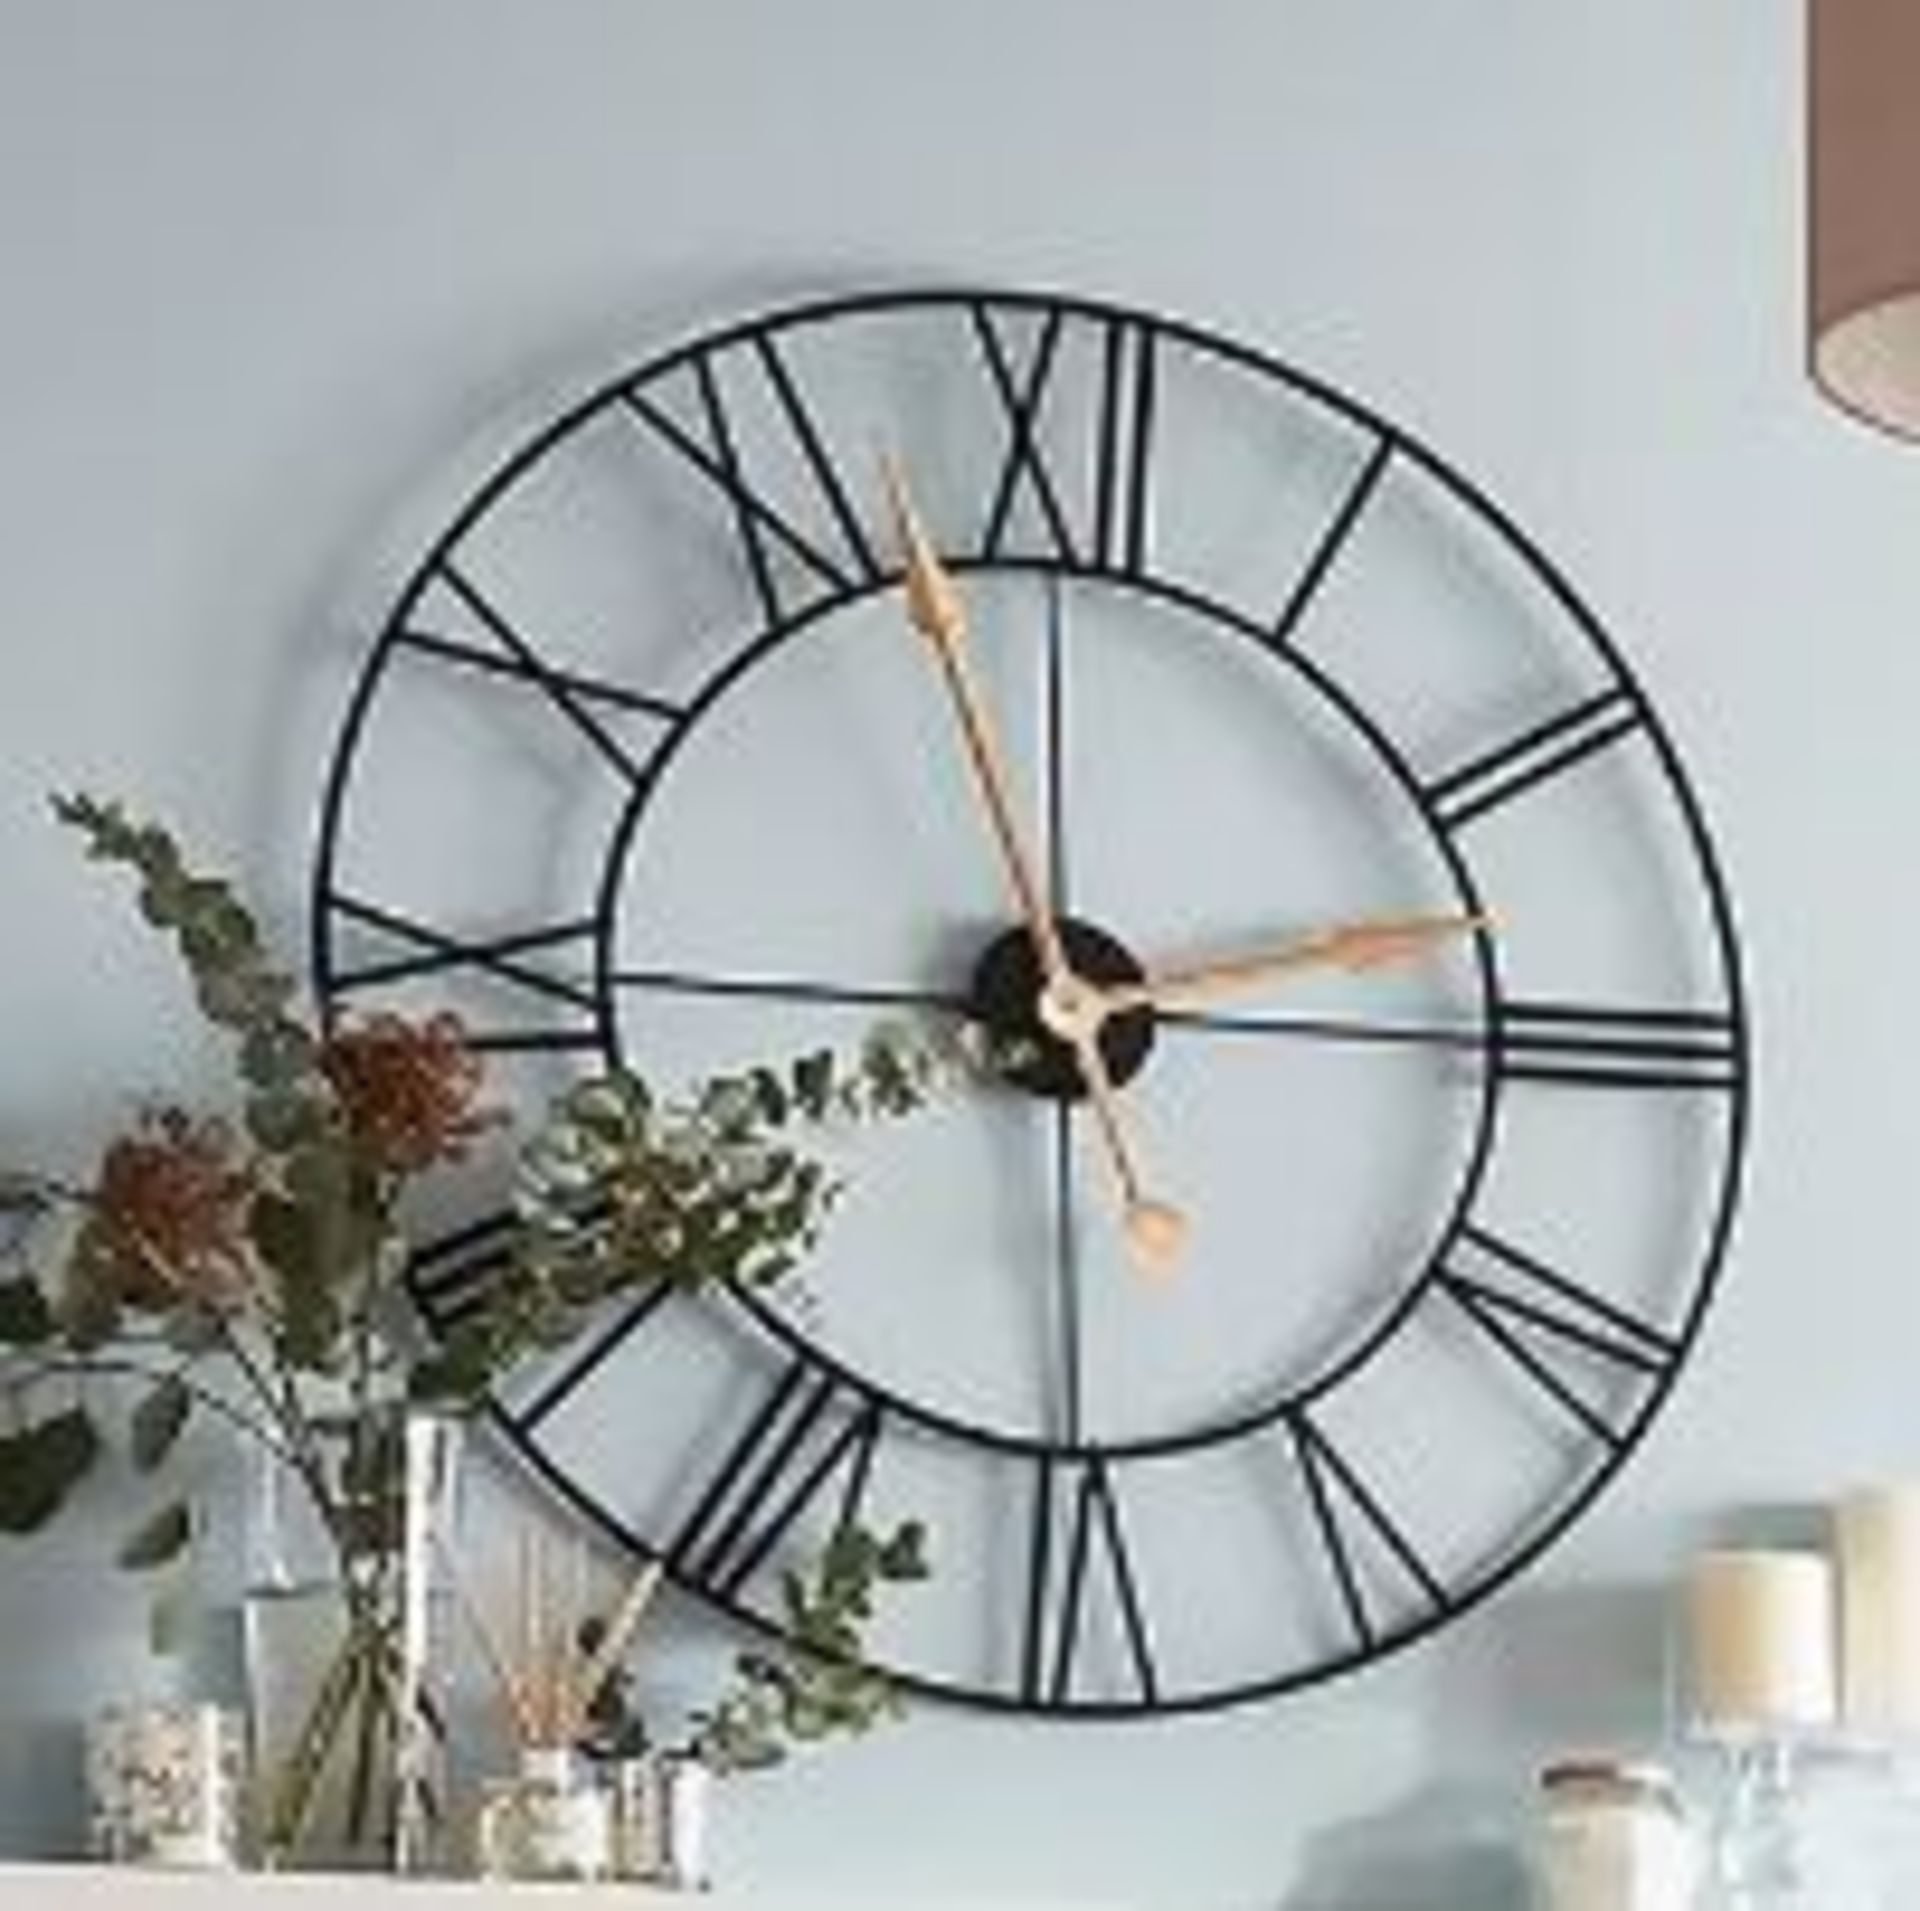 (P3) 1x Wall Clock Black. Traditional Style Clock With Roman Numerals, With Gold Hands. (H80x Dia - Image 2 of 3